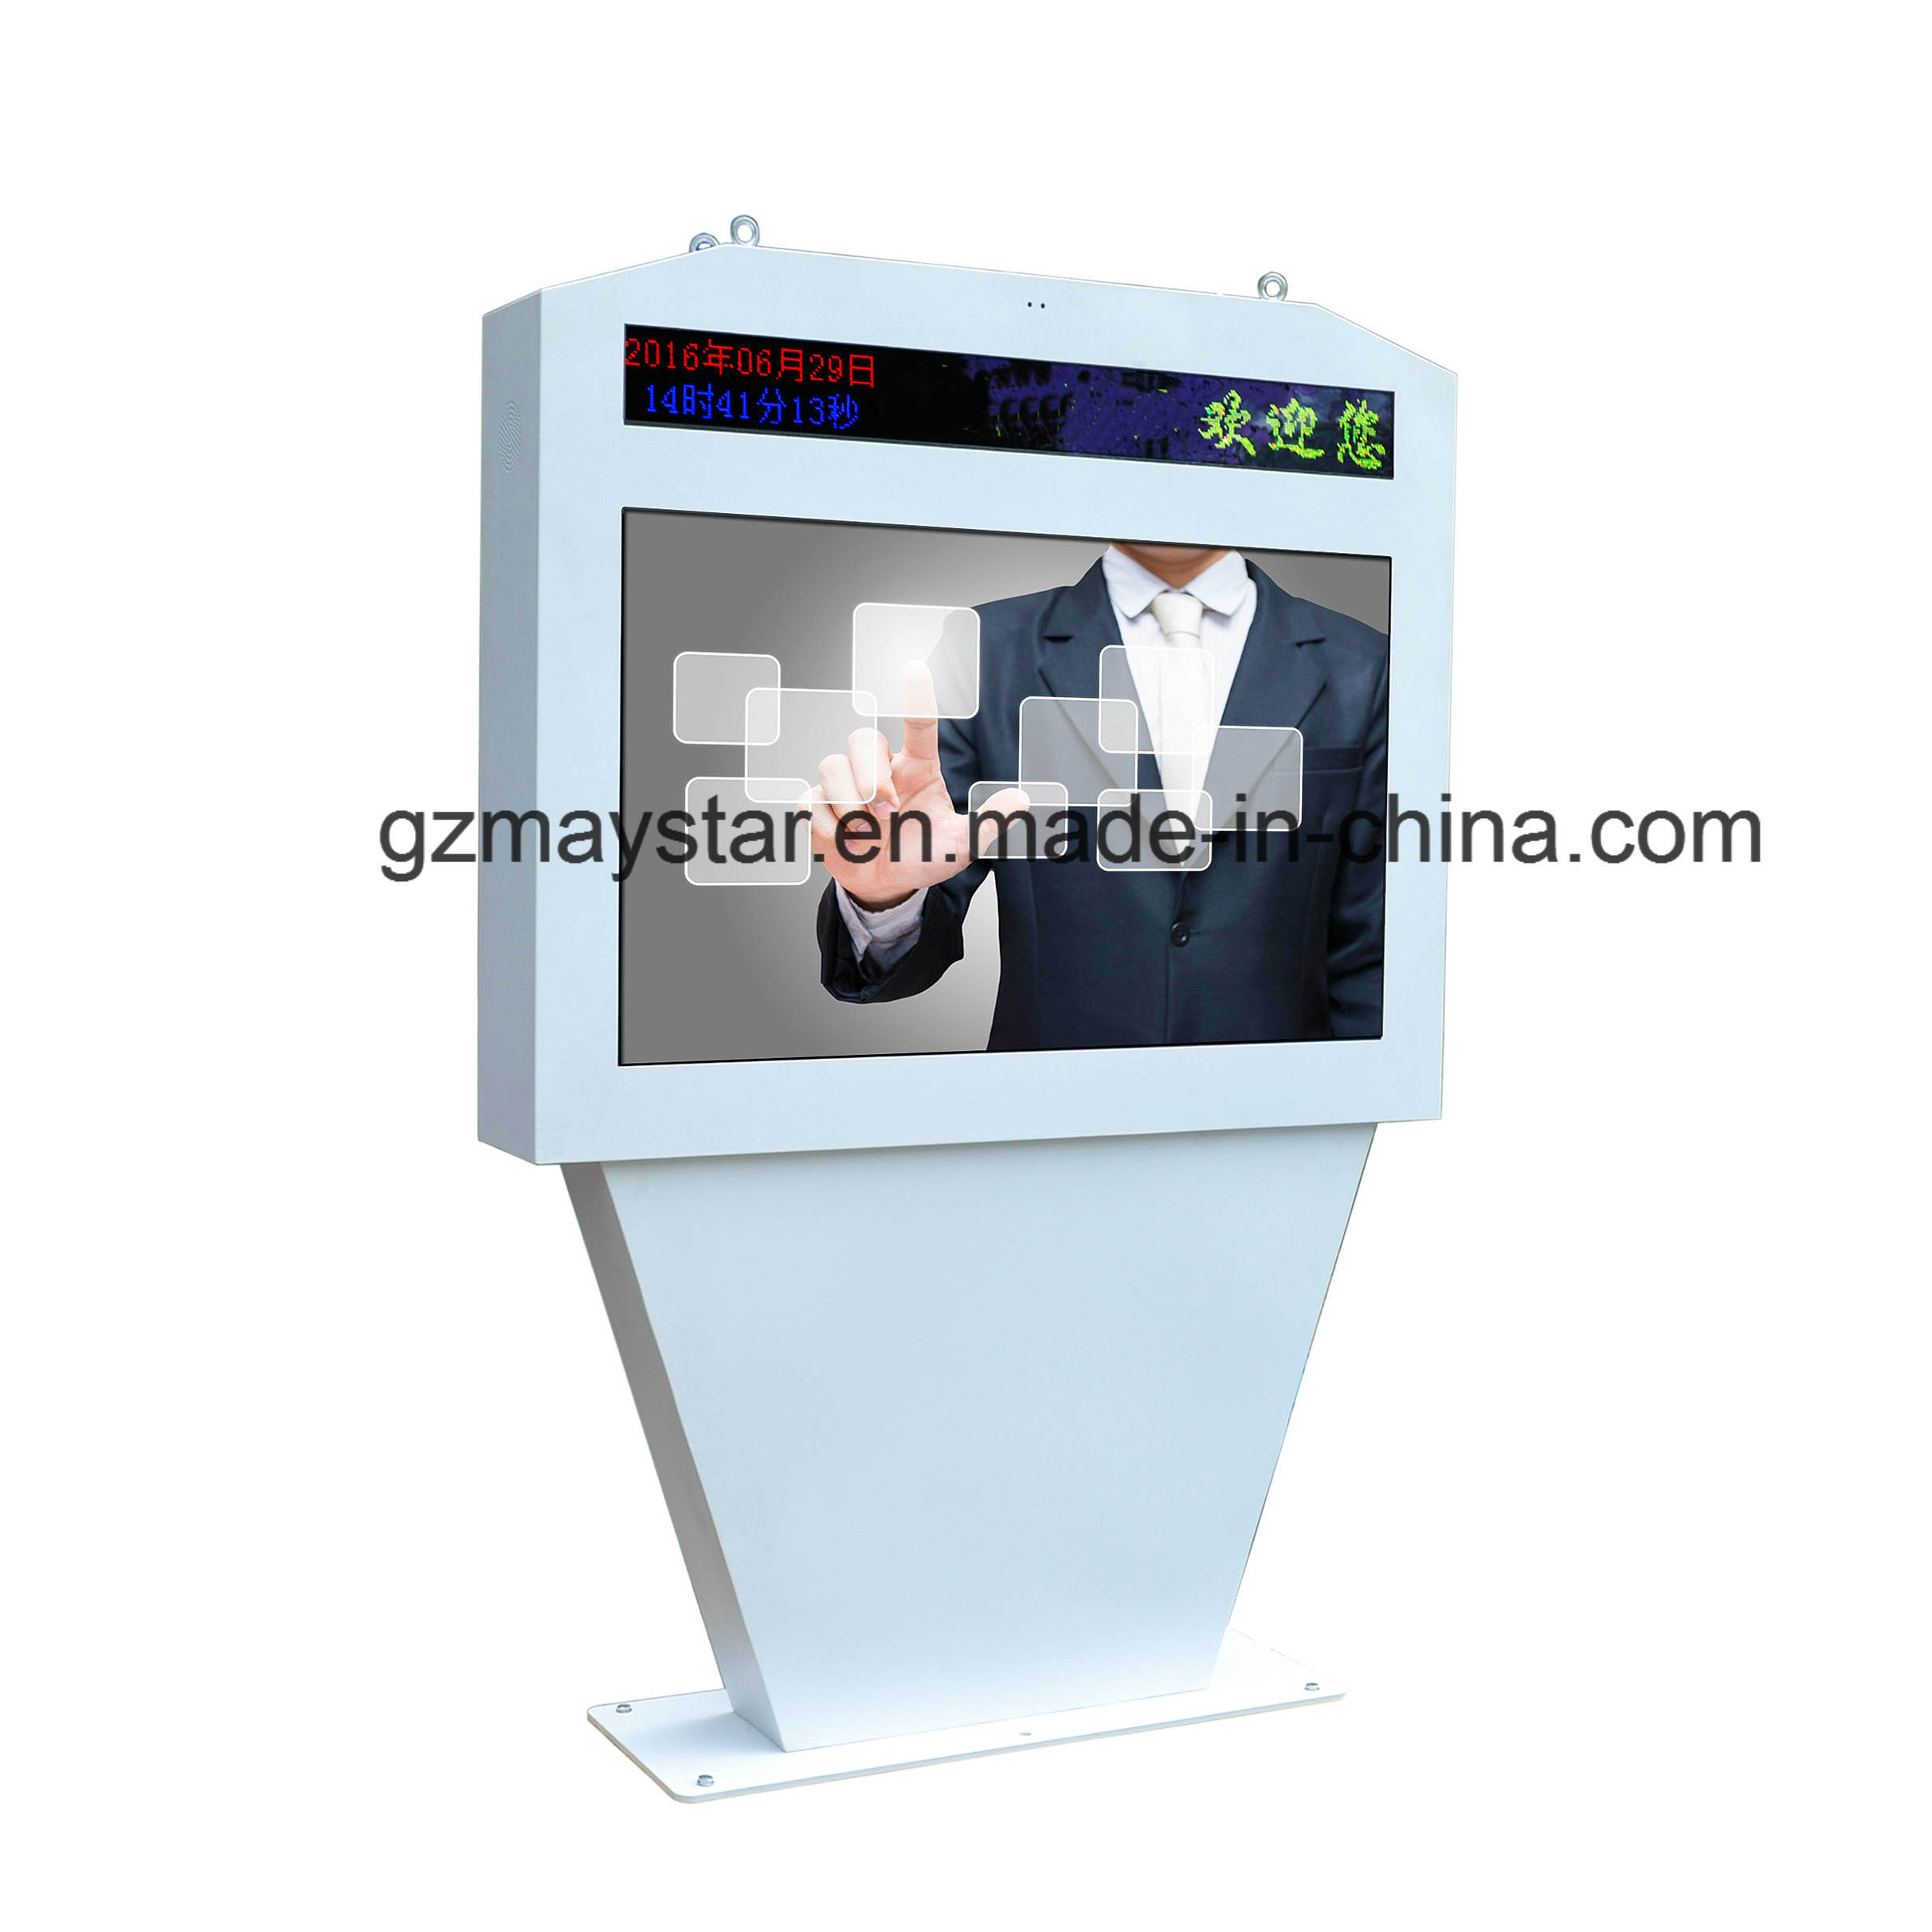 2016 Popular Outdoor LCD display Alone Instagram Photo Booth